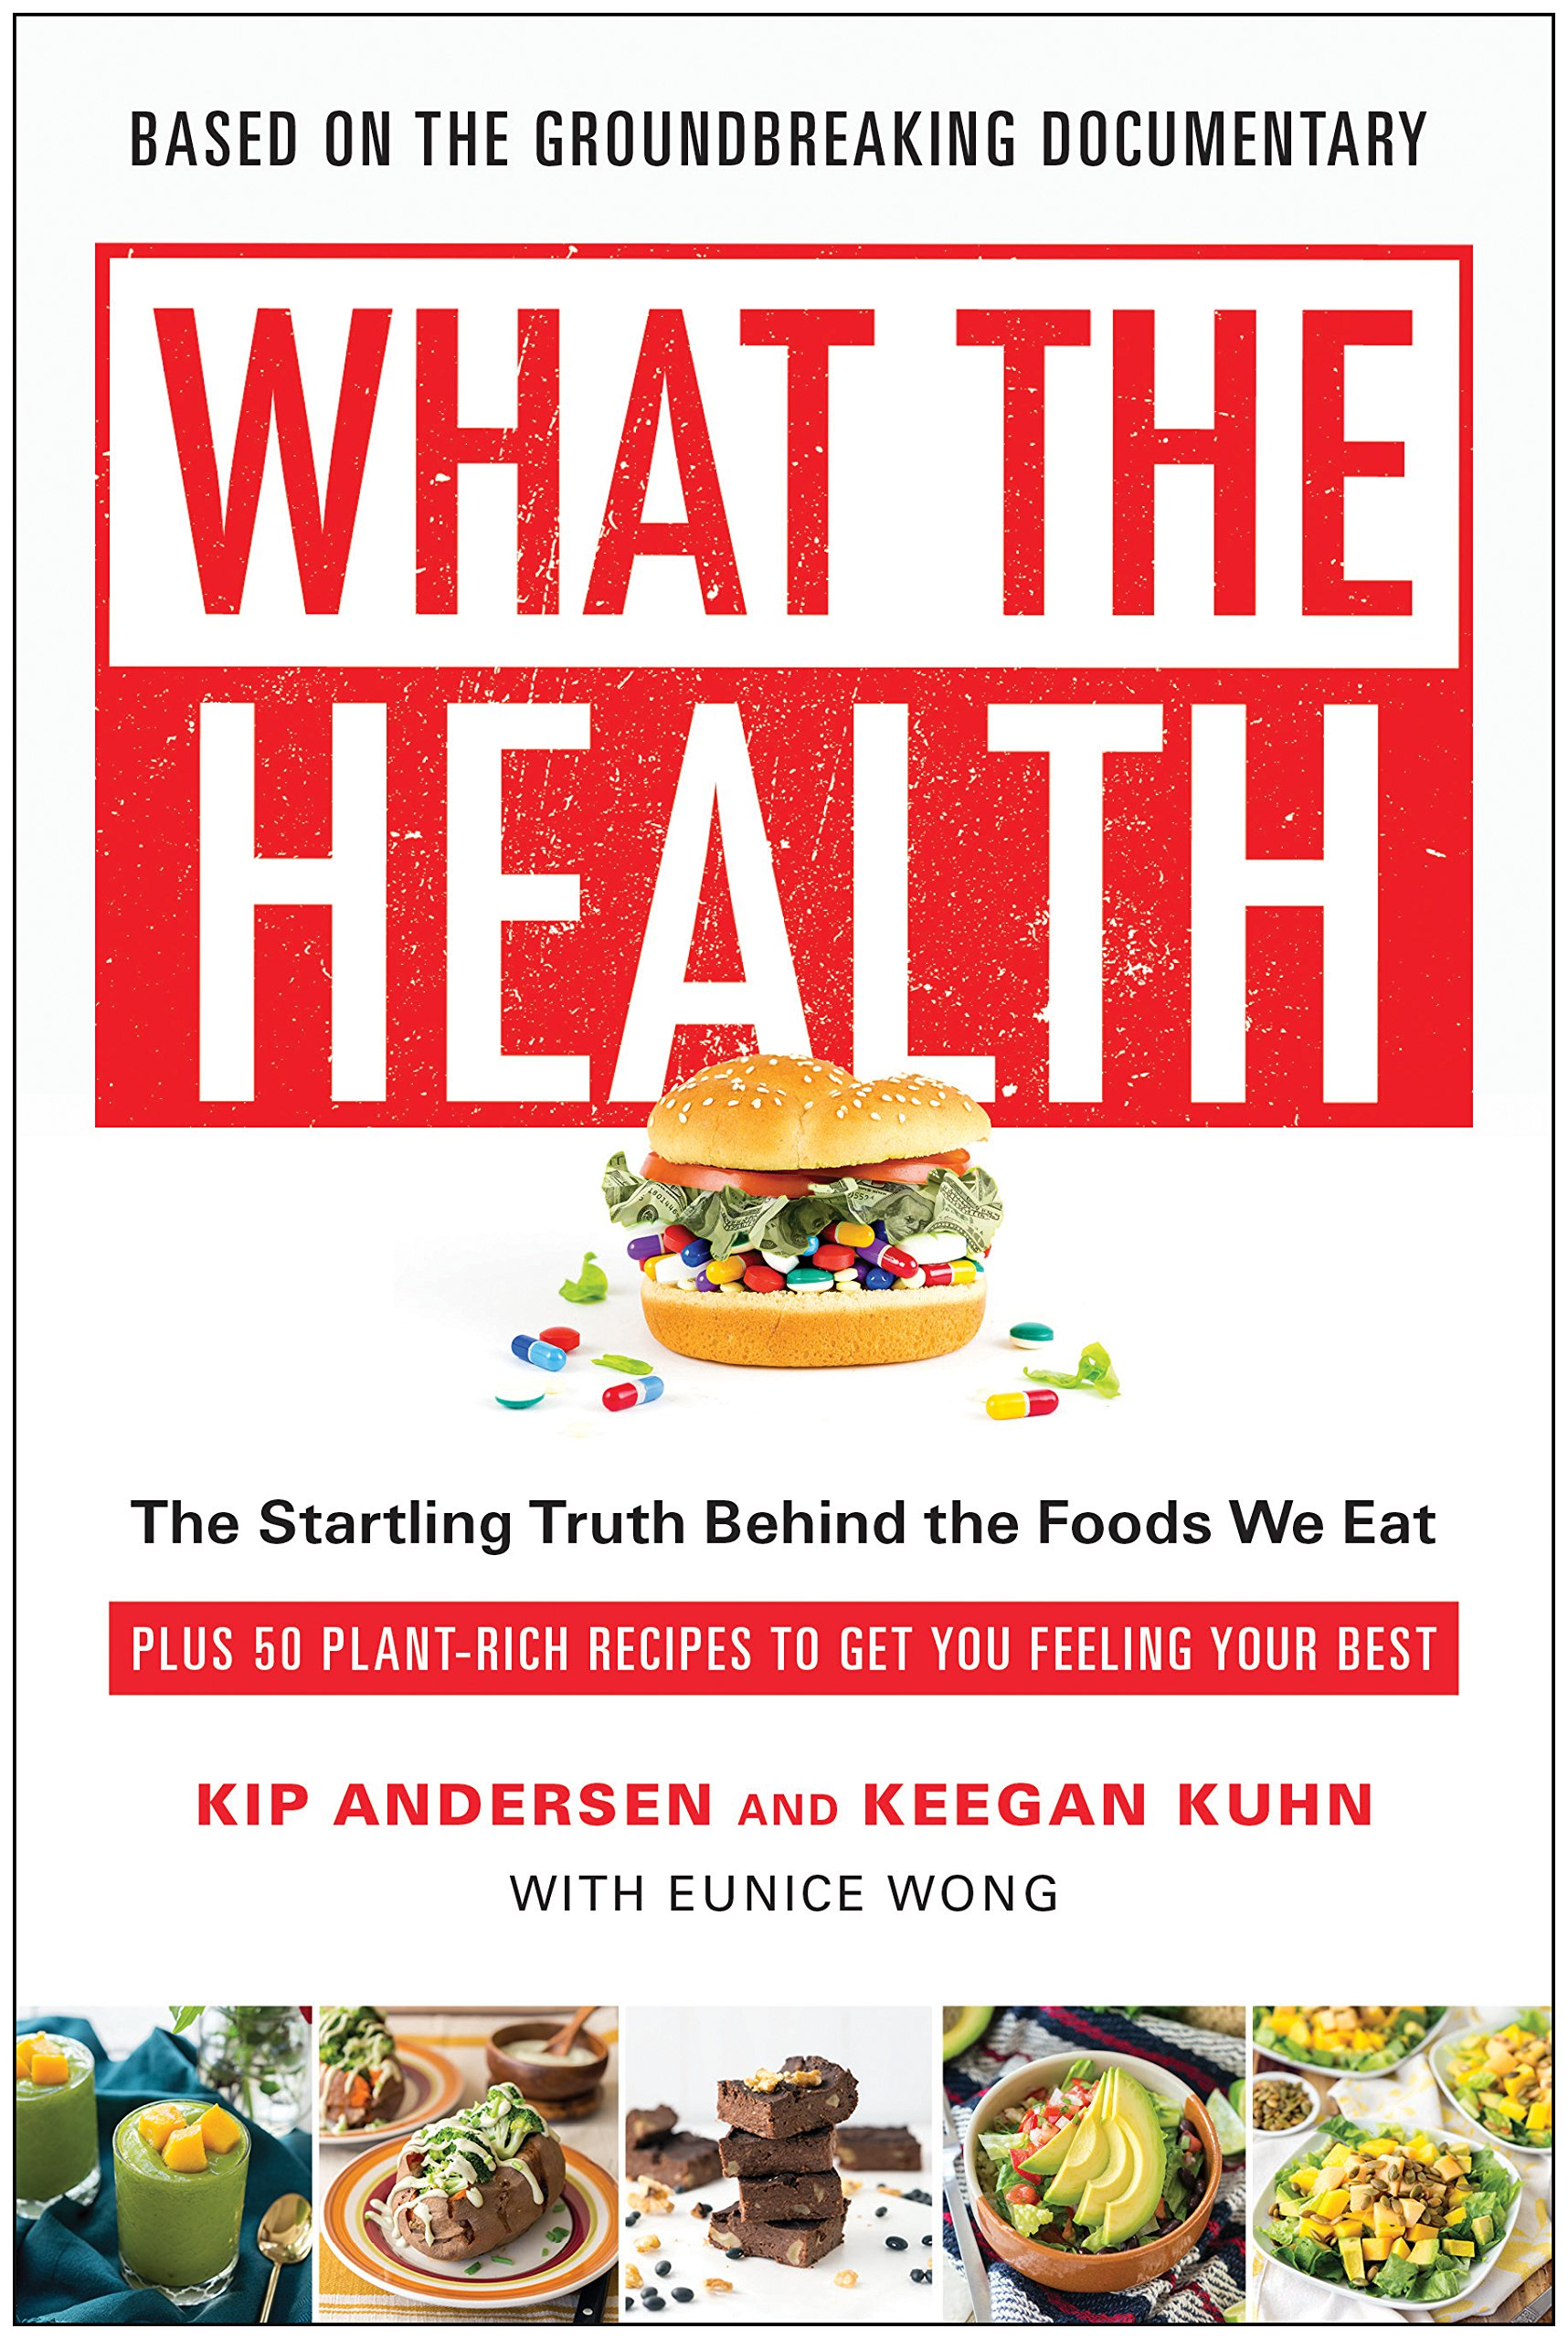 912YKlBdRVL - What the Health: The Startling Truth Behind the Foods We Eat, Plus 50 Plant-Rich Recipes to Get You Feeling Your Best